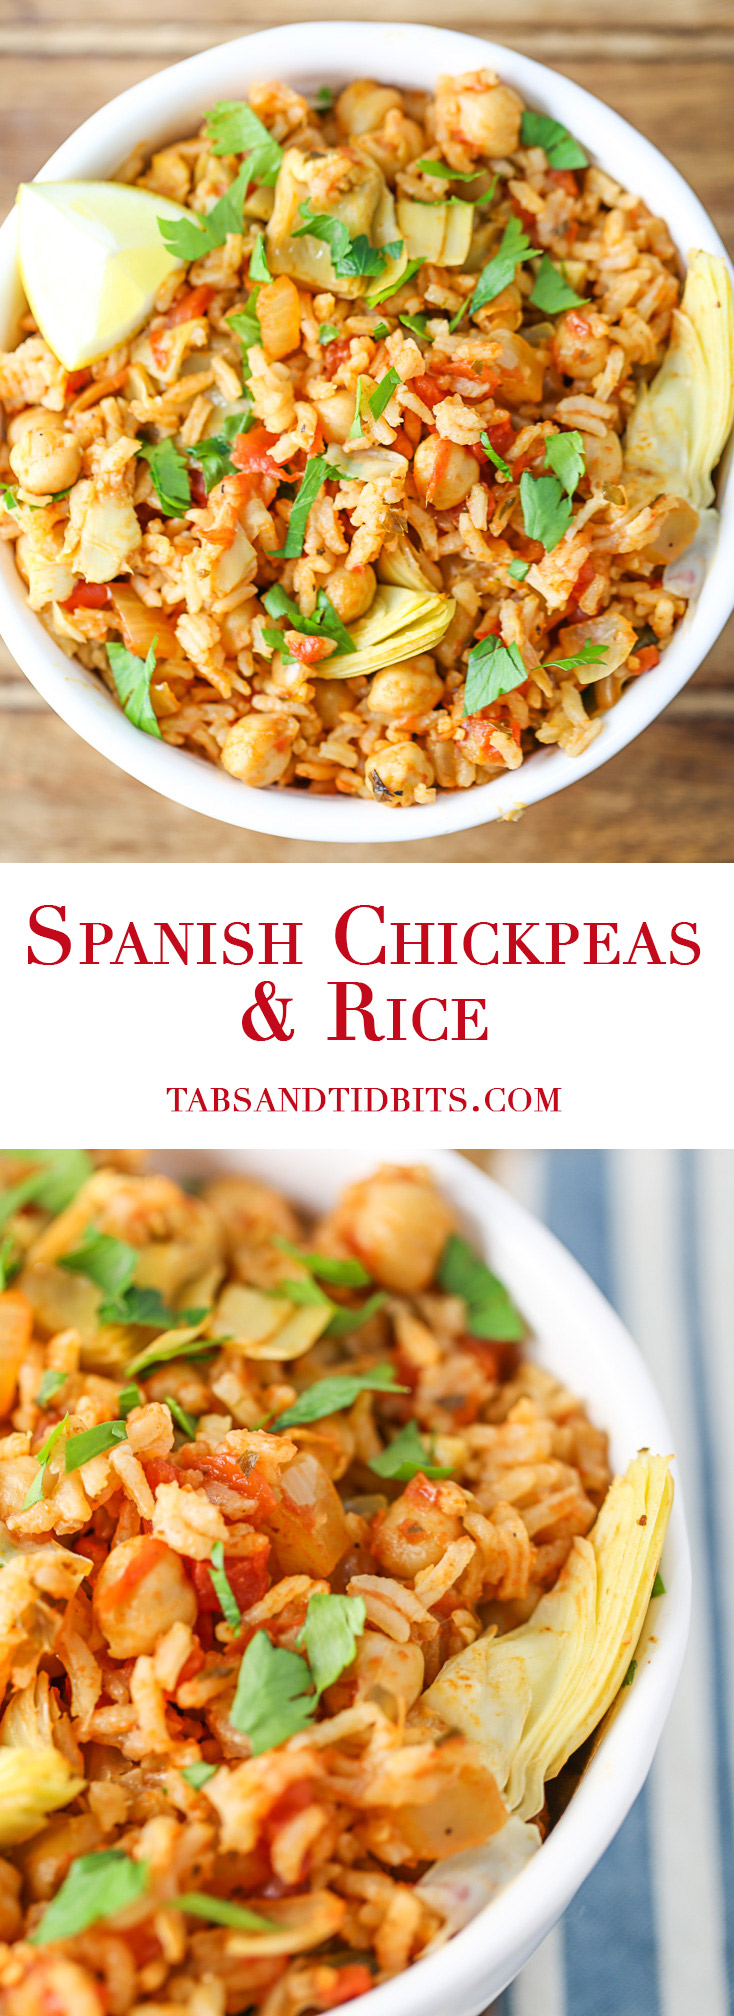 Spanish Chickpeas & Rice - A filling one pot dish full of spices, rice, chickpeas, tomatoes, artichoke hearts, and topped with fresh lemon!